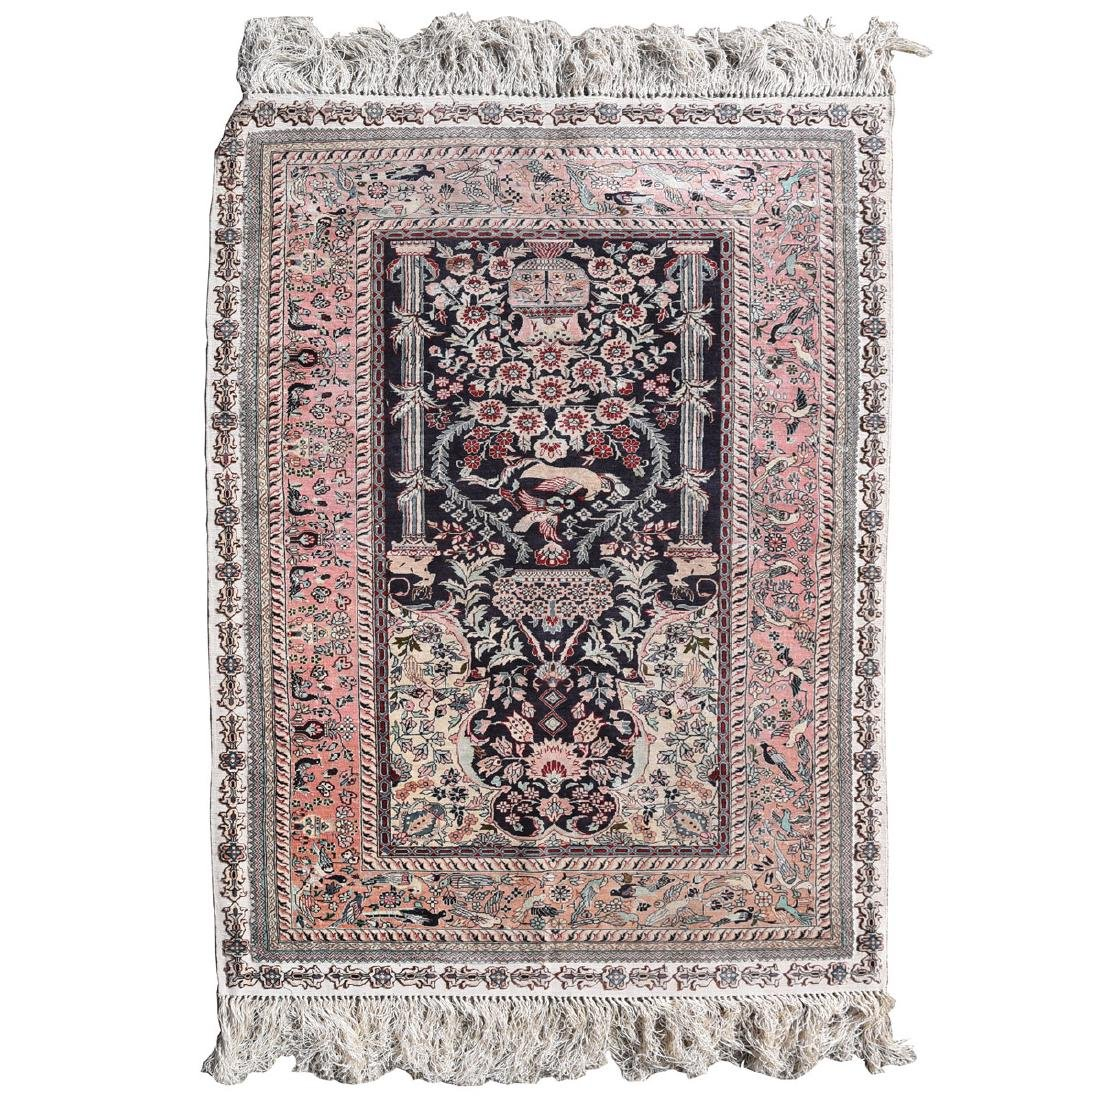 Indian Silk Rug, with Beige Ground and Bird and Floral